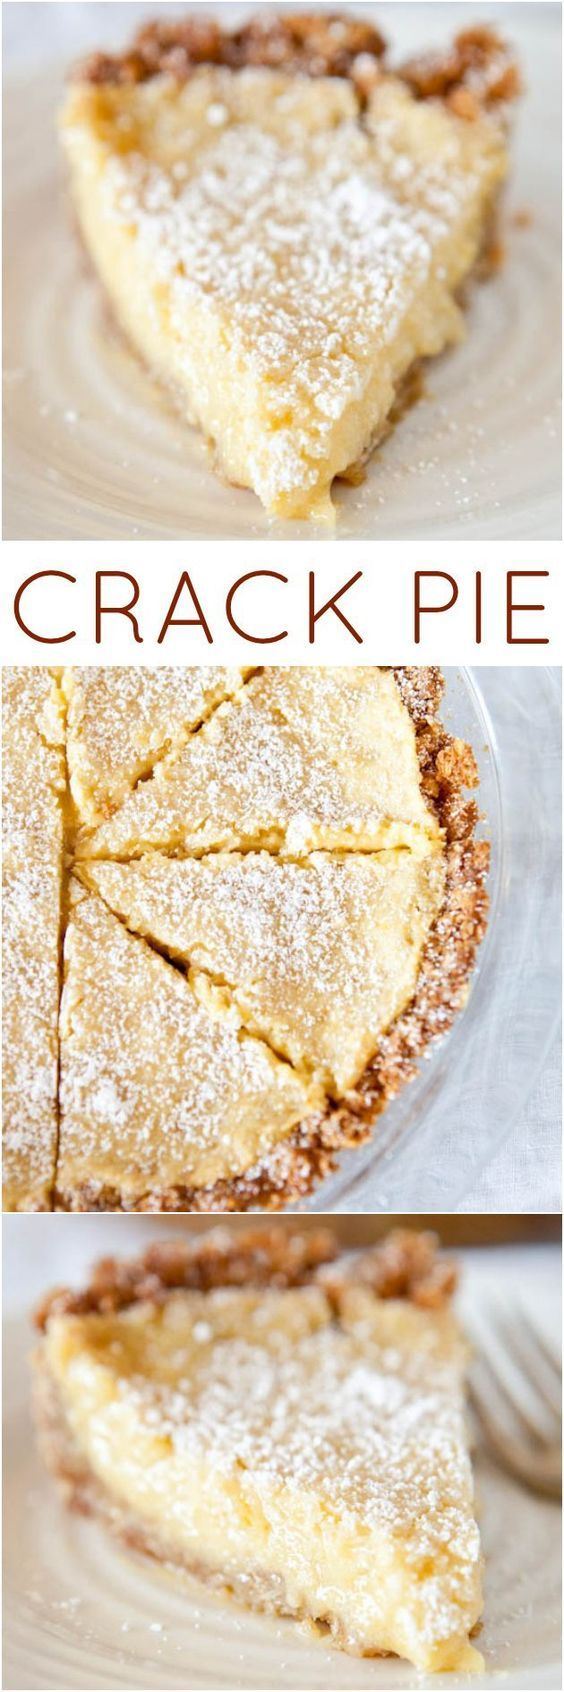 All about this crust! Use Crist for tartd  Crack Pie from the Momofoku Milkbar cookbook - There's a reason this pie has it's name. And it definitely lives up to the hype! (the pie sells for $44.00 at Momofoku's!)